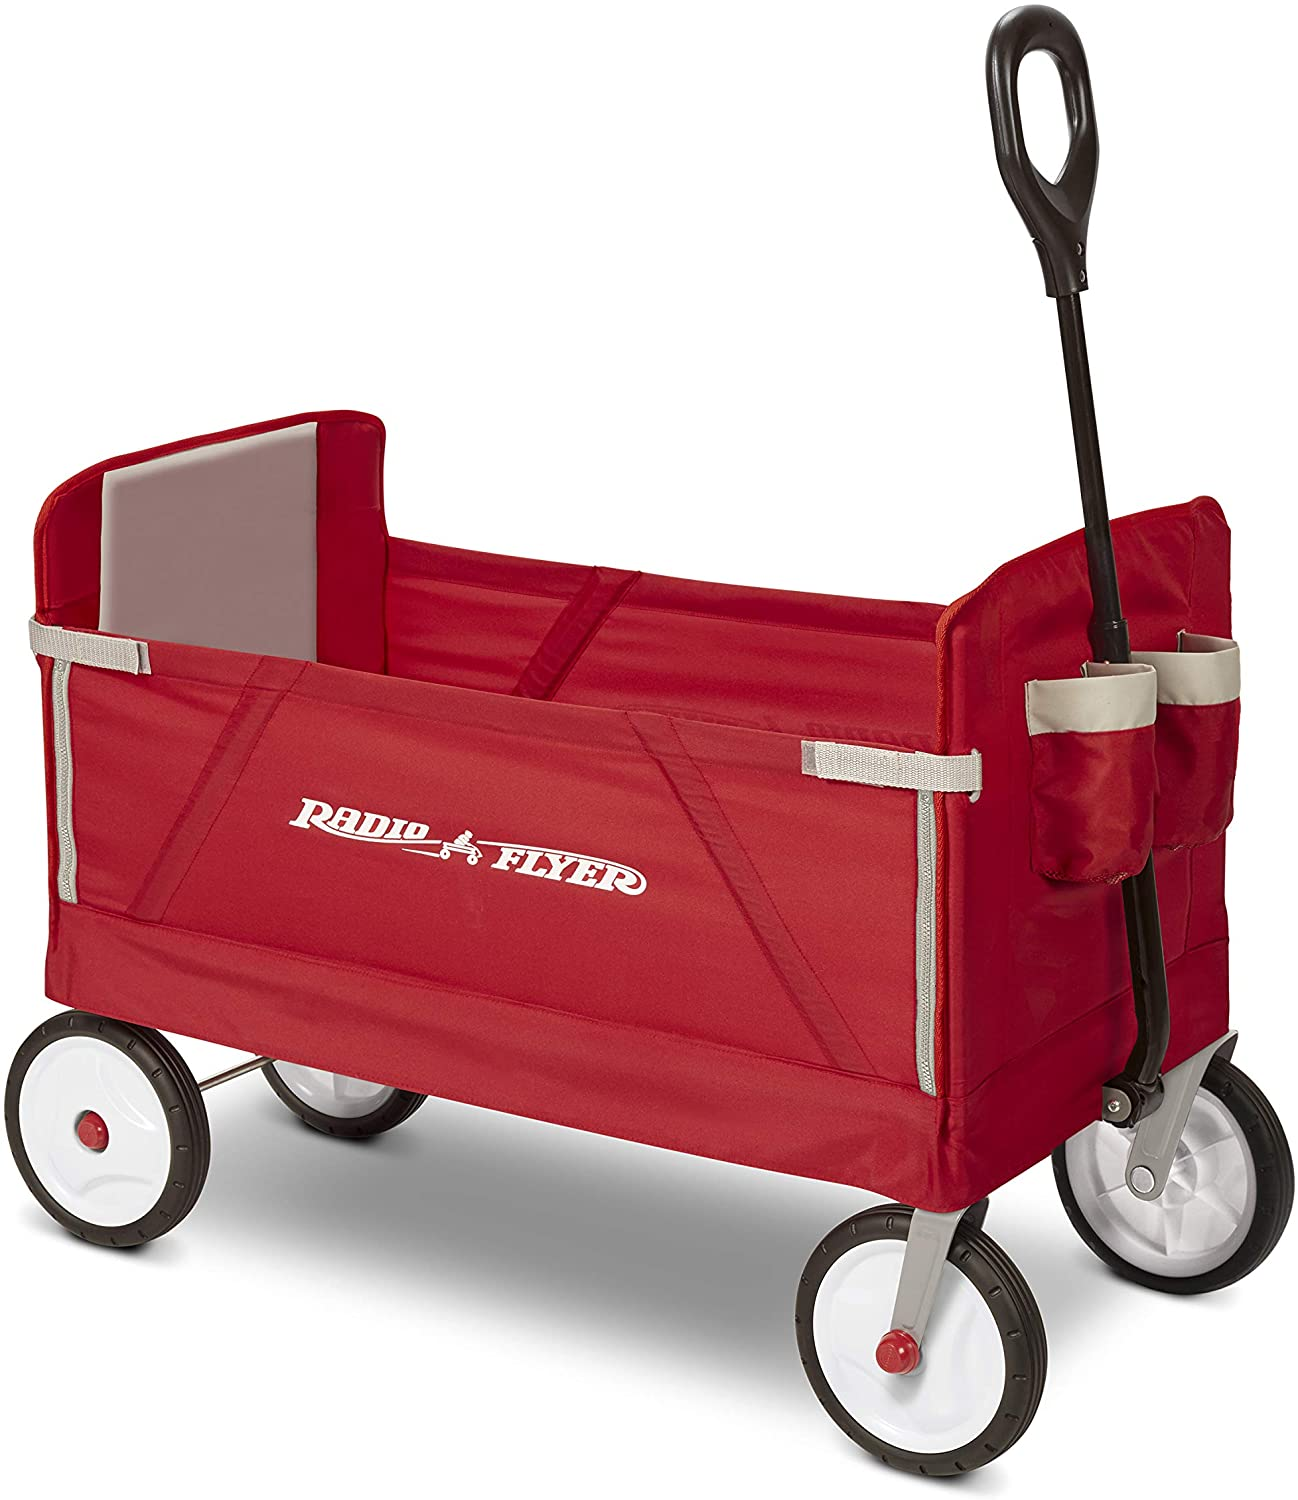 Radio Flyer Beach Wagon